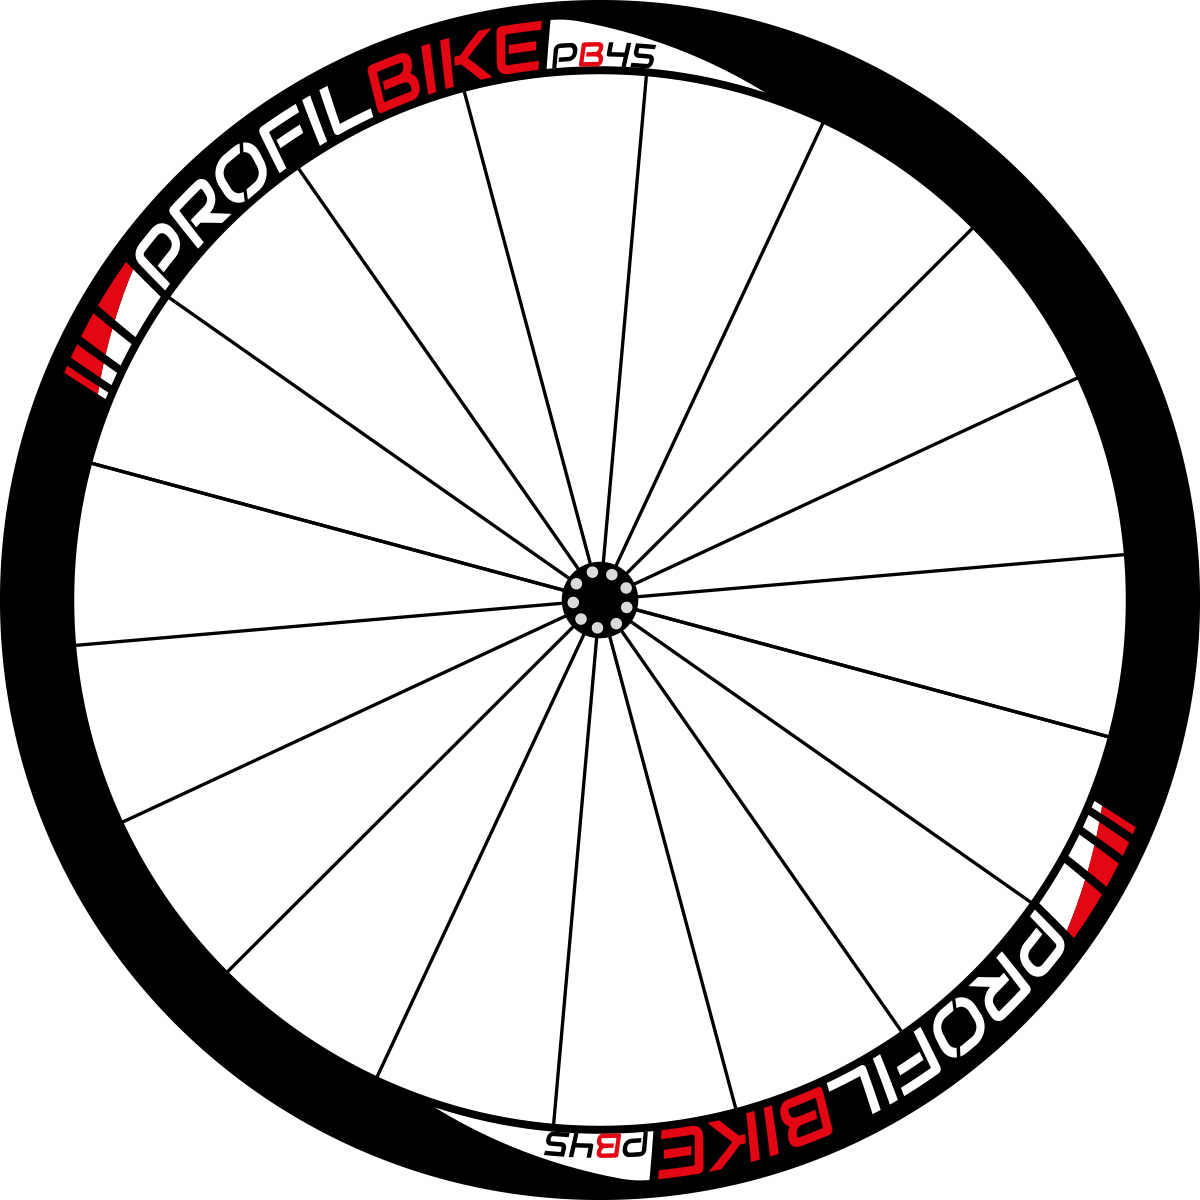 Profilbike PB45 CARBON DISC design rouge